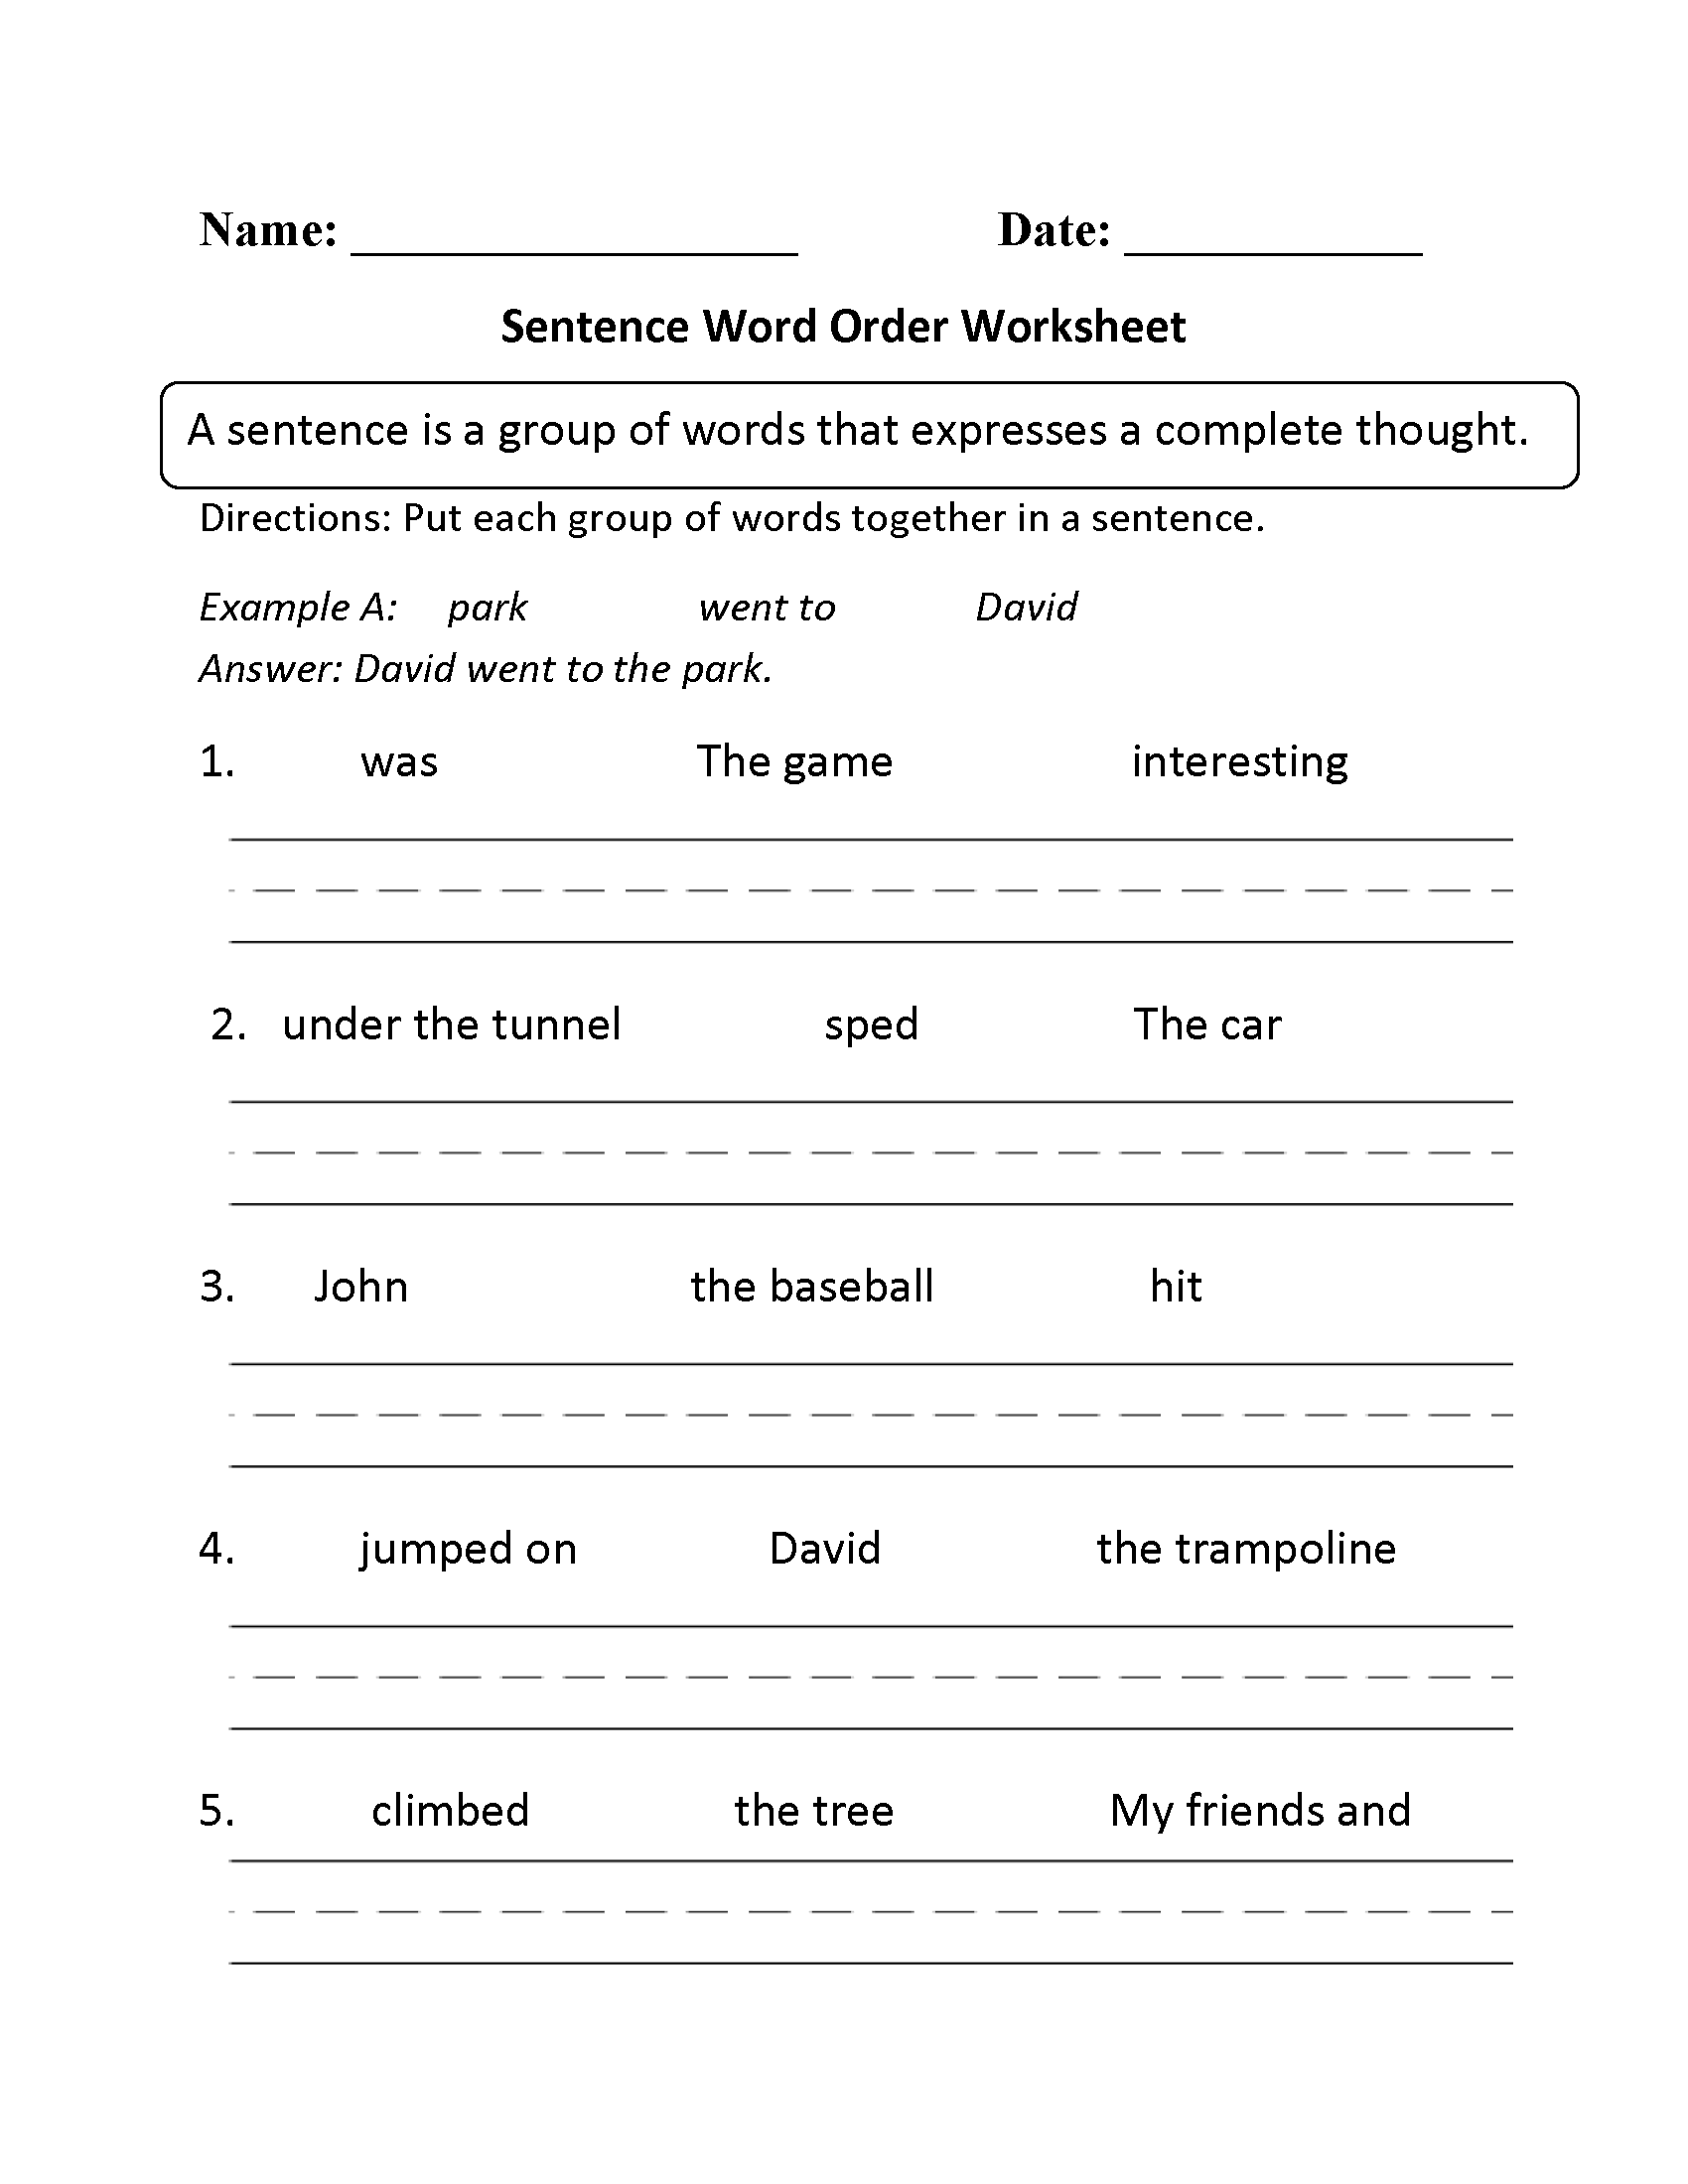 Worksheets Sentence Building Worksheets sentence structure worksheets building word order worksheet